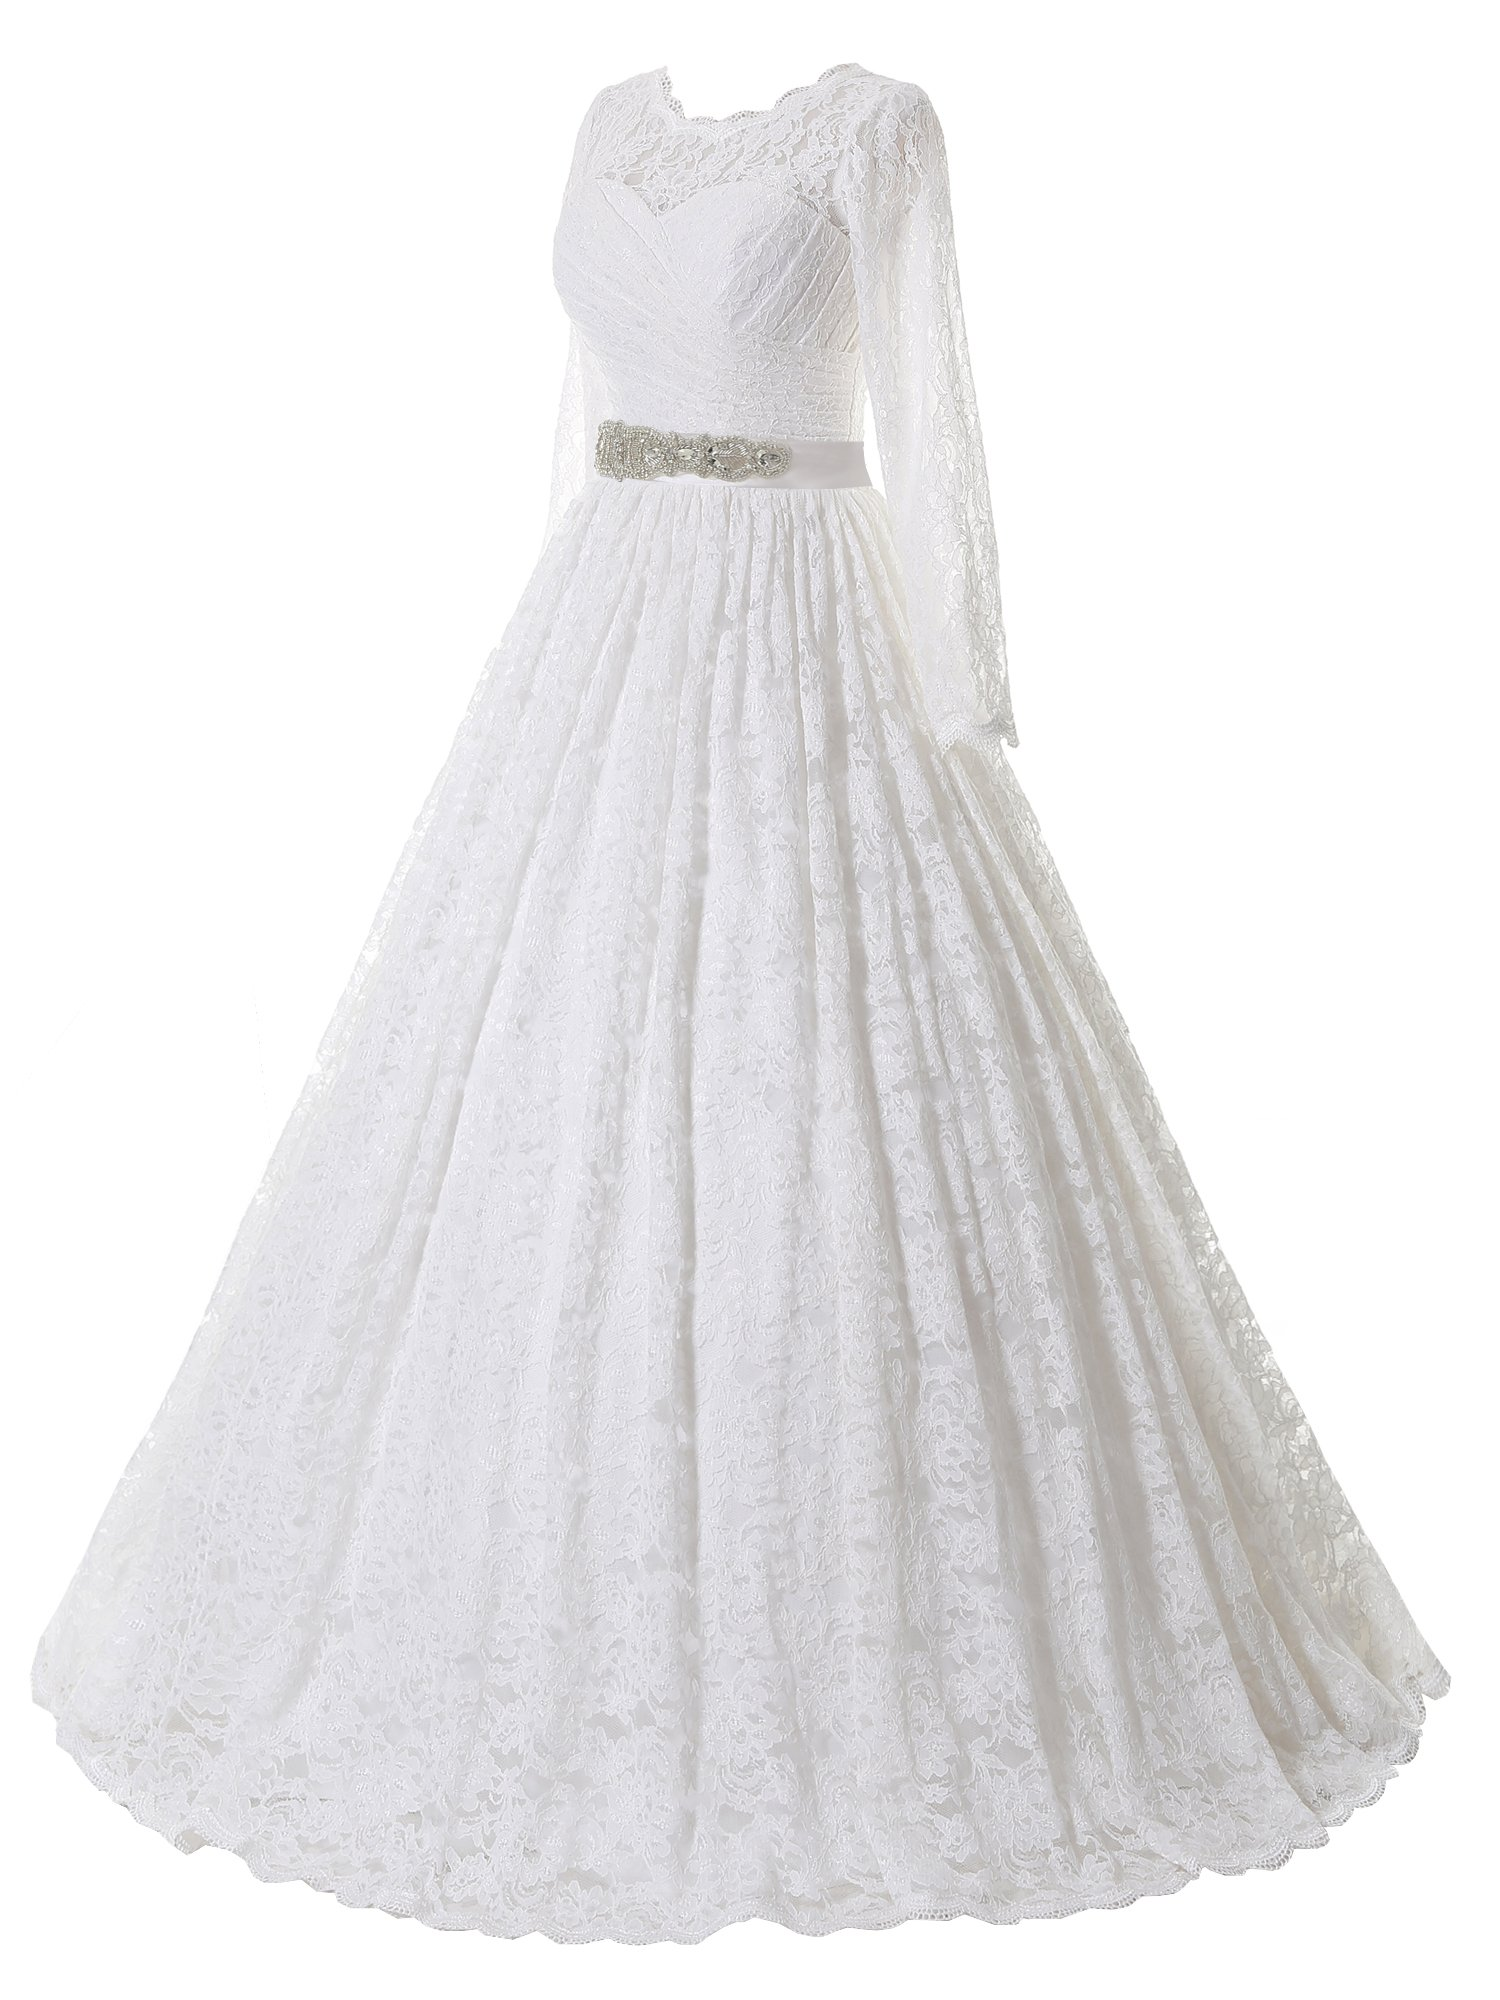 Home Bride Dresses SOLOVEDRESS Women s Ball Gown Lace Princess Long Sleeves  Wedding Dress Sash Beaded Bridal Gown (US 20 Plus 61d88fb7d